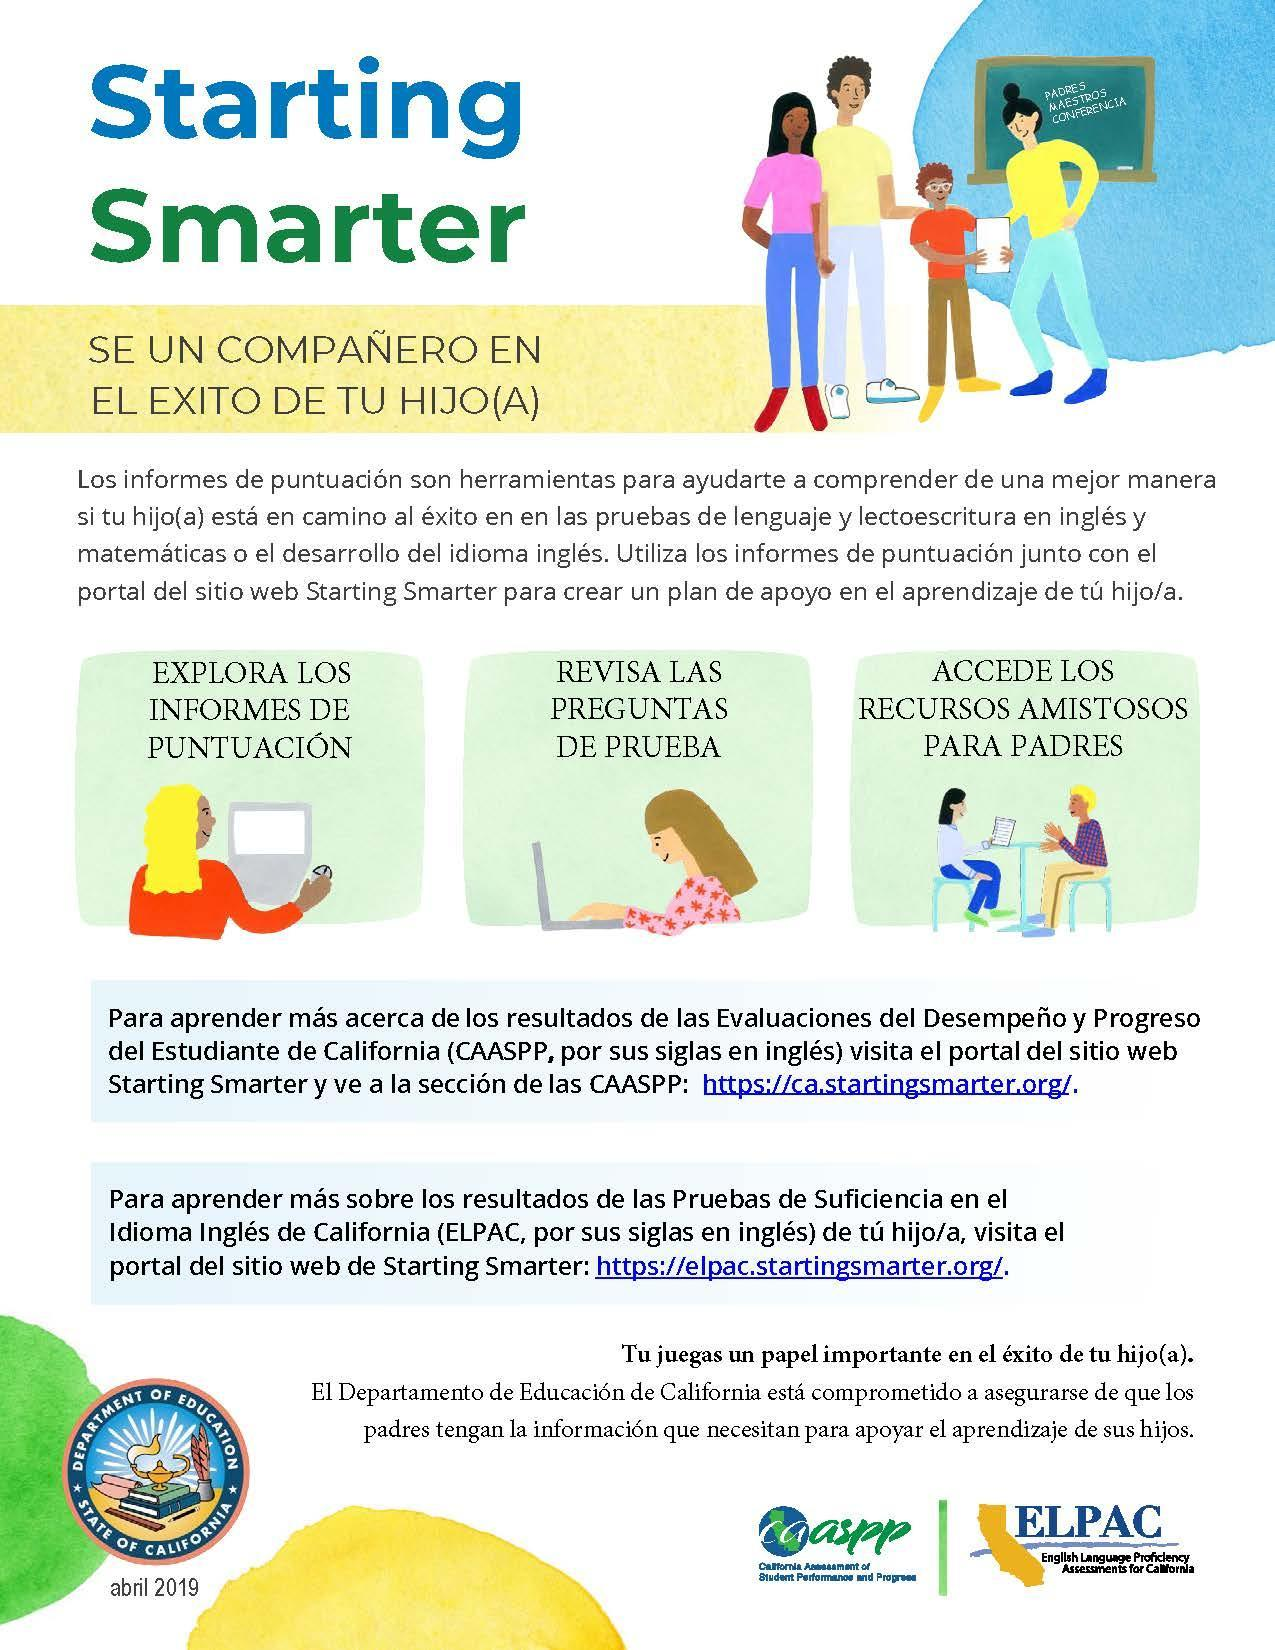 Starting Smarter Parent Flyer Spanish